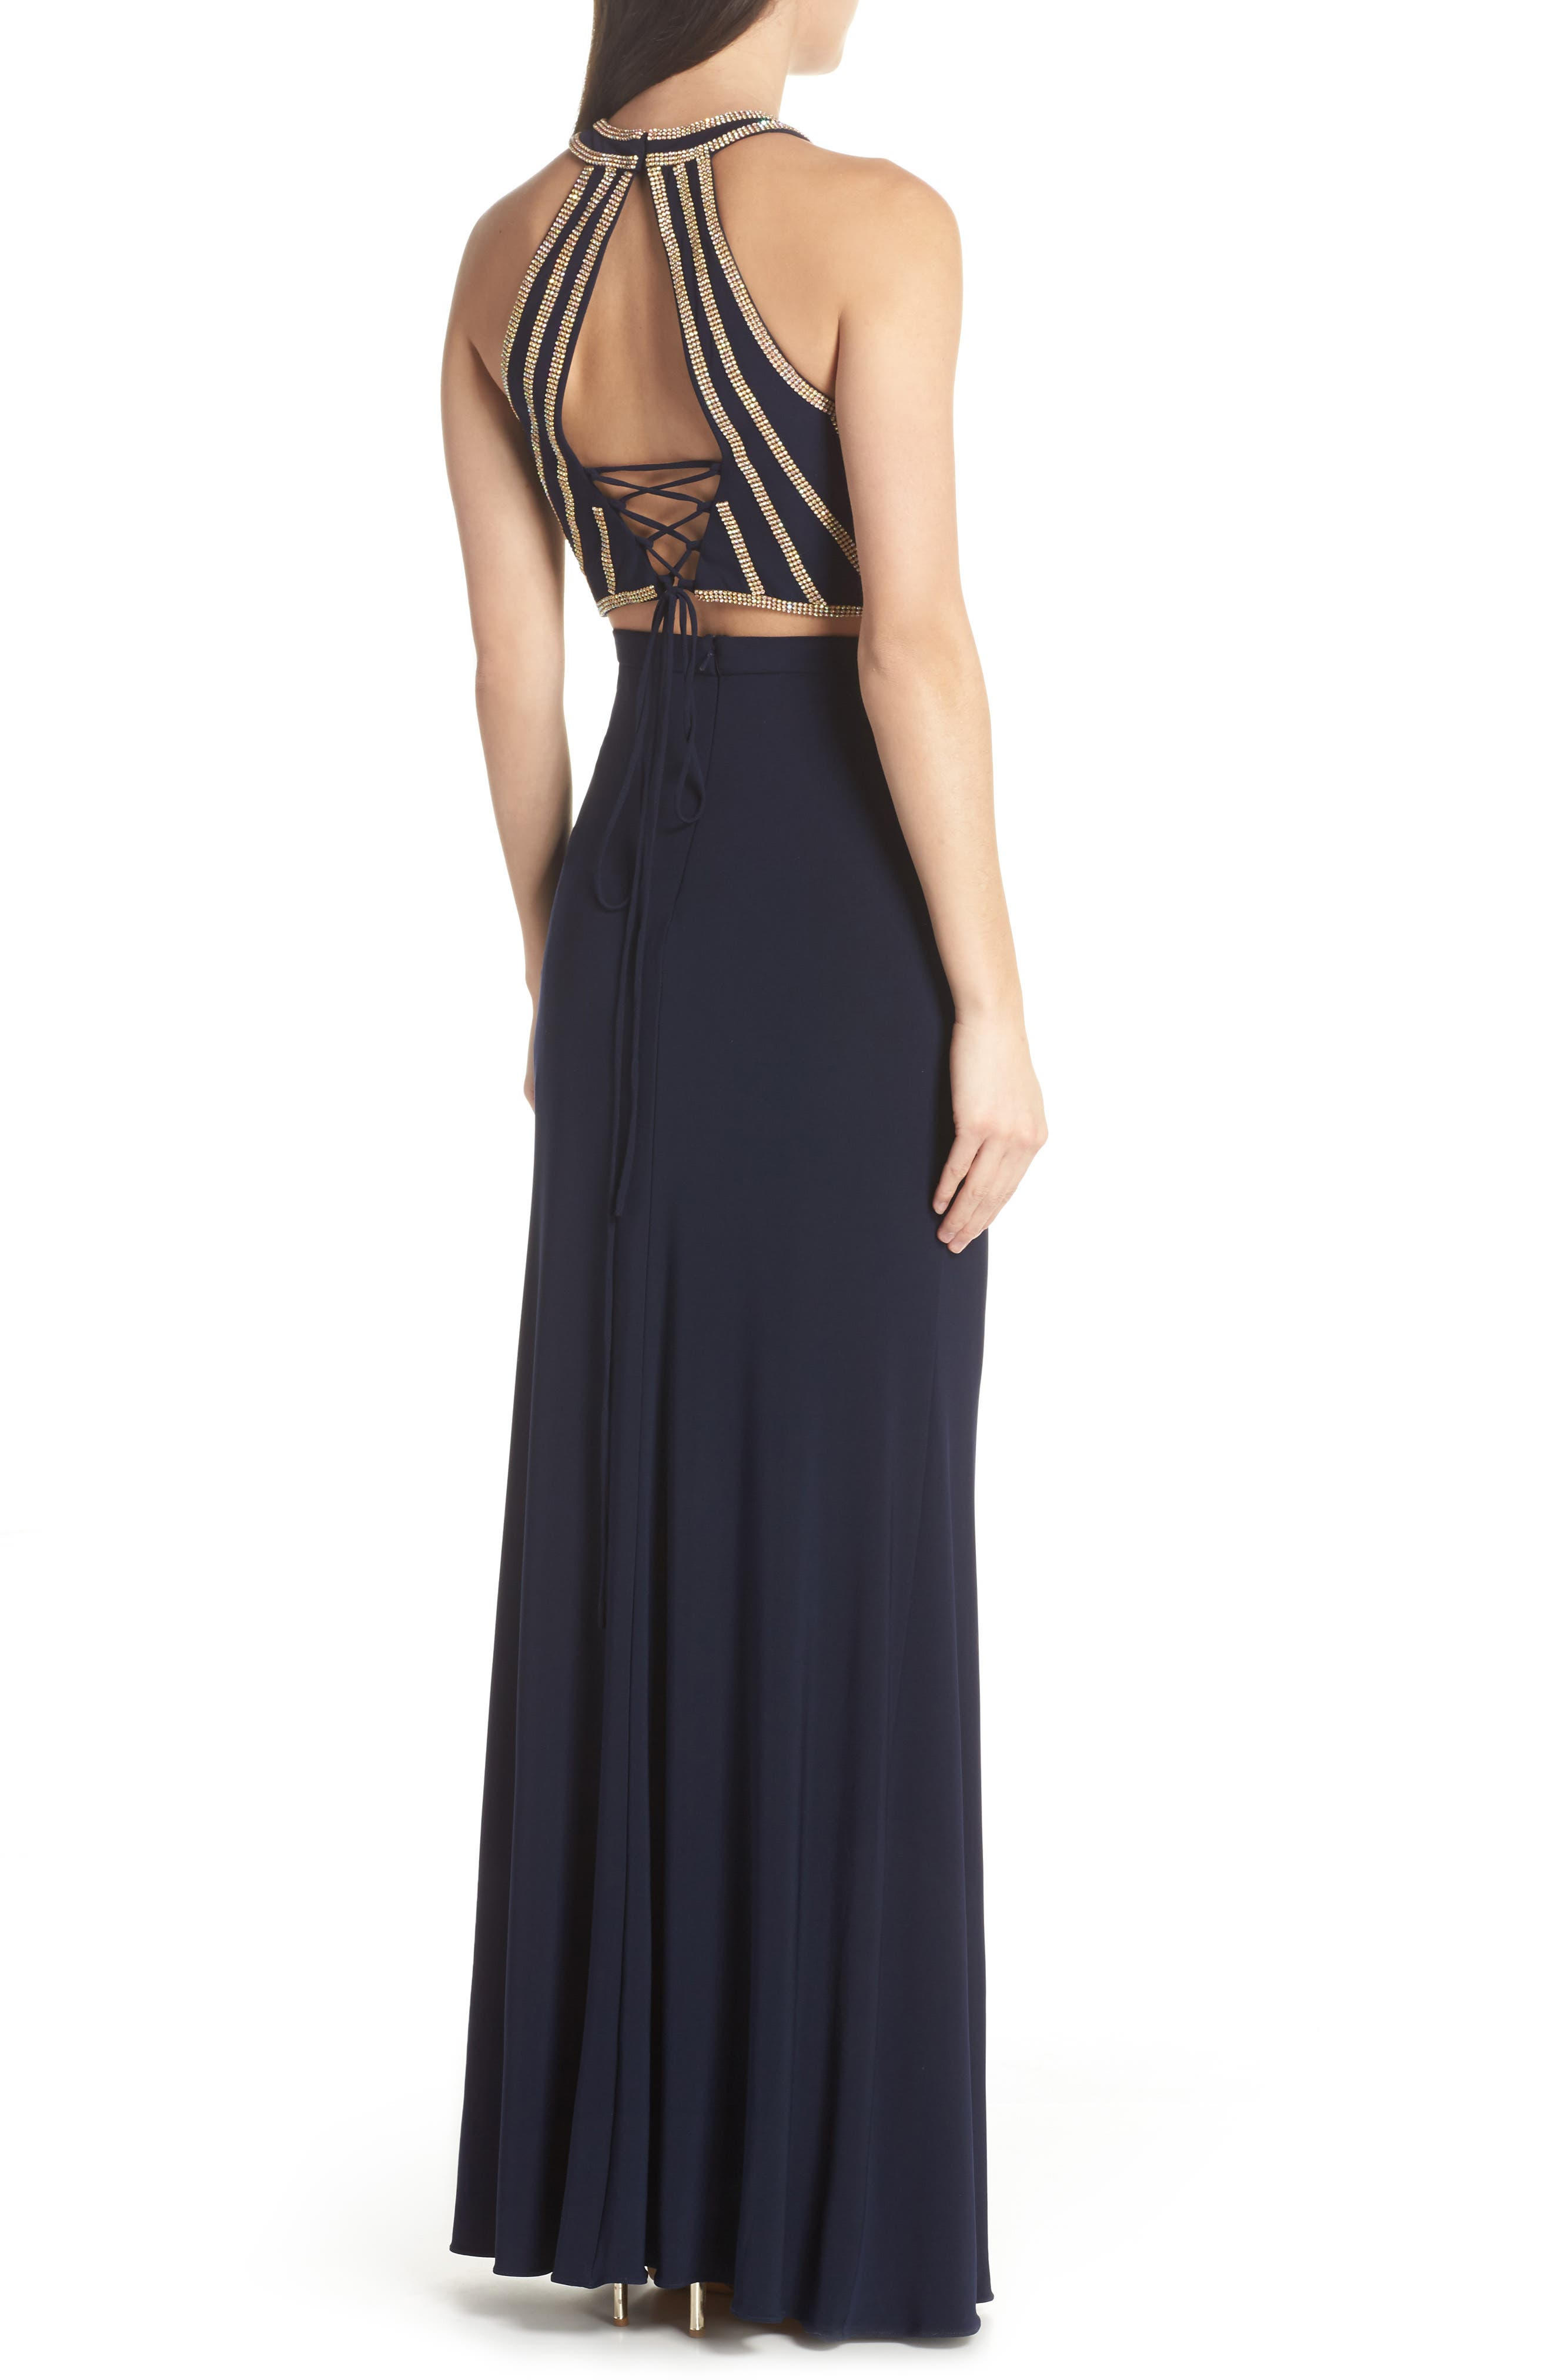 Beaded Top Two-Piece Dress,                             Alternate thumbnail 2, color,                             Navy/ Gold